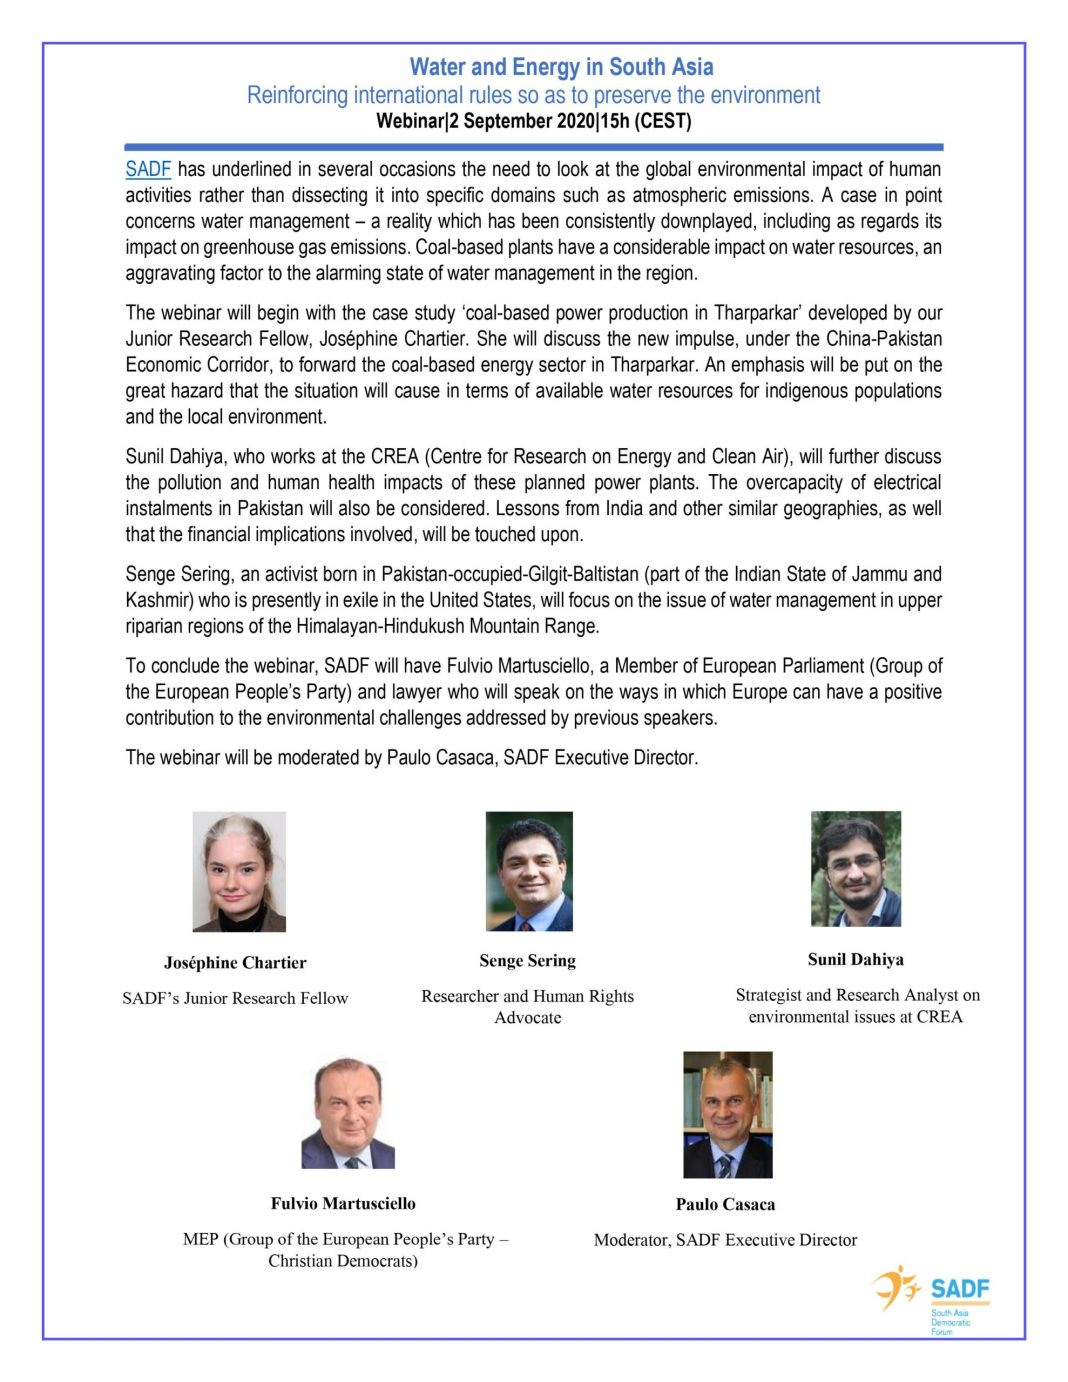 , Webinar Postponed to 2 September 2020 at 15h (CEST) – Water and Energy in South Asia Reinforcing International Rules so as to Preserve the Environment